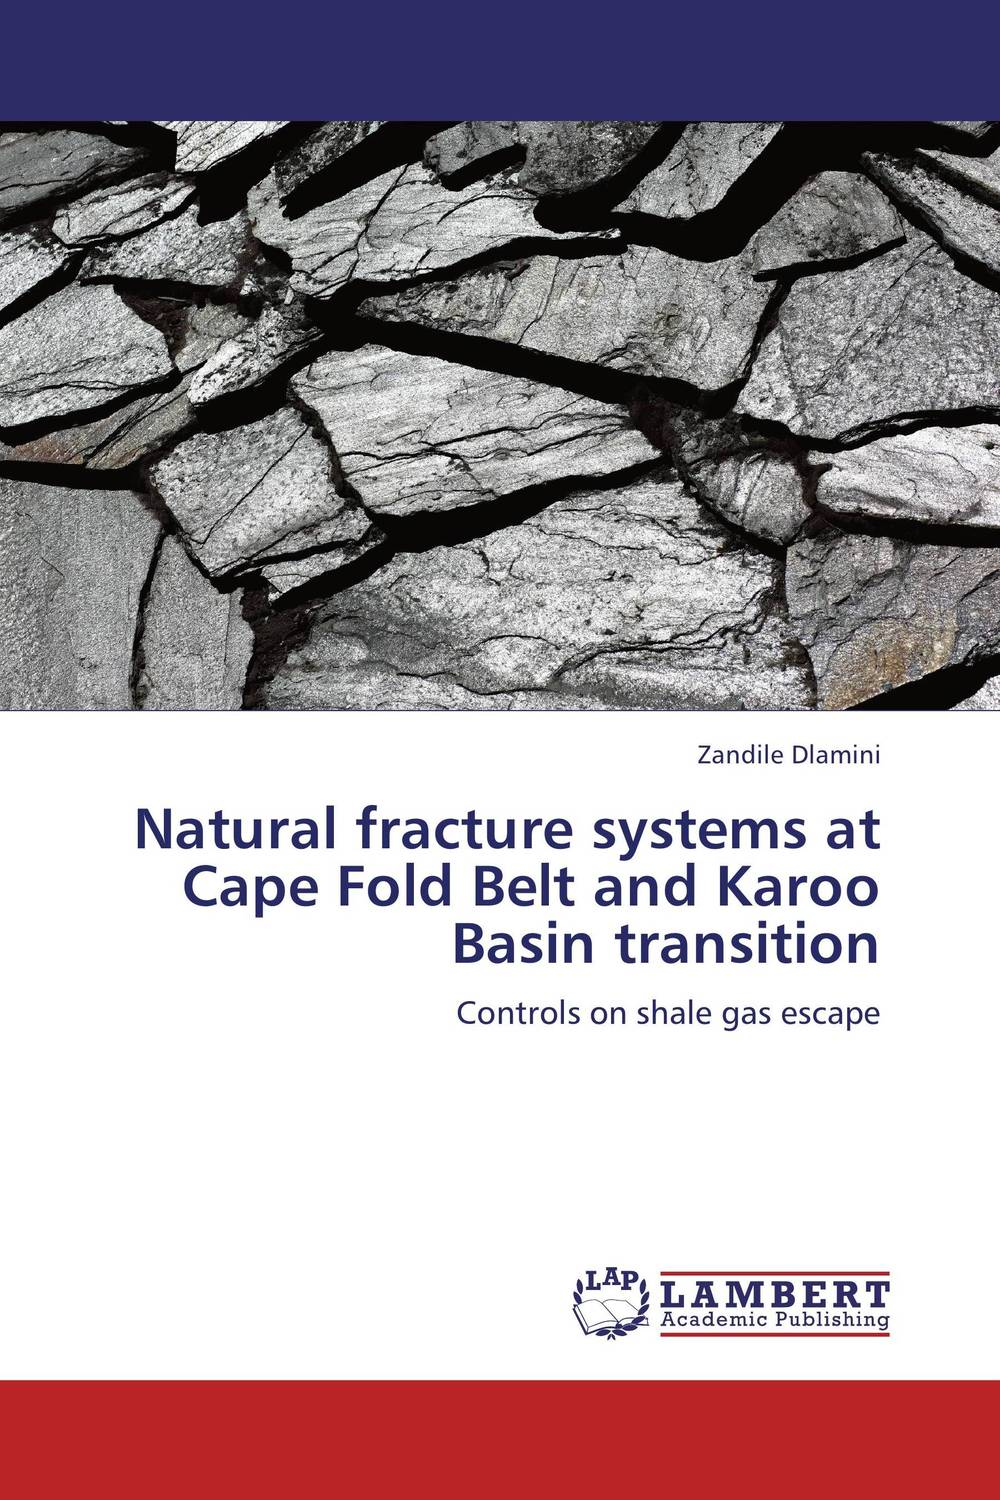 Natural fracture systems at Cape Fold Belt and Karoo Basin transition azimuth azimuth the touchstone depart 3 сd